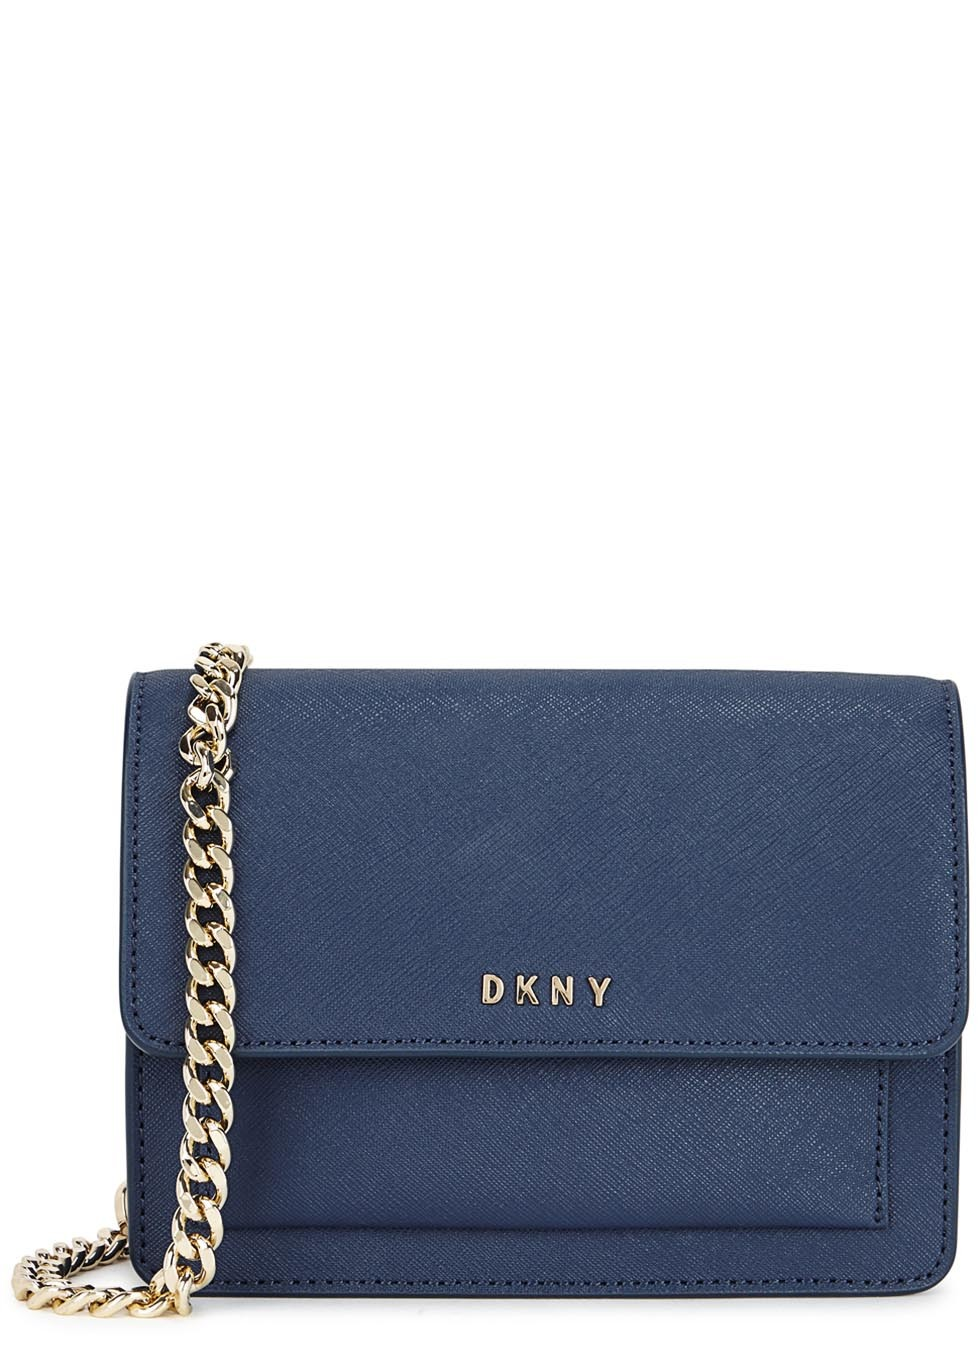 Mini Blue Leather Cross Body Bag - predominant colour: navy; secondary colour: gold; occasions: casual; type of pattern: standard; style: messenger; length: across body/long; size: small; material: leather; pattern: plain; finish: plain; embellishment: chain/metal; season: s/s 2016; wardrobe: highlight